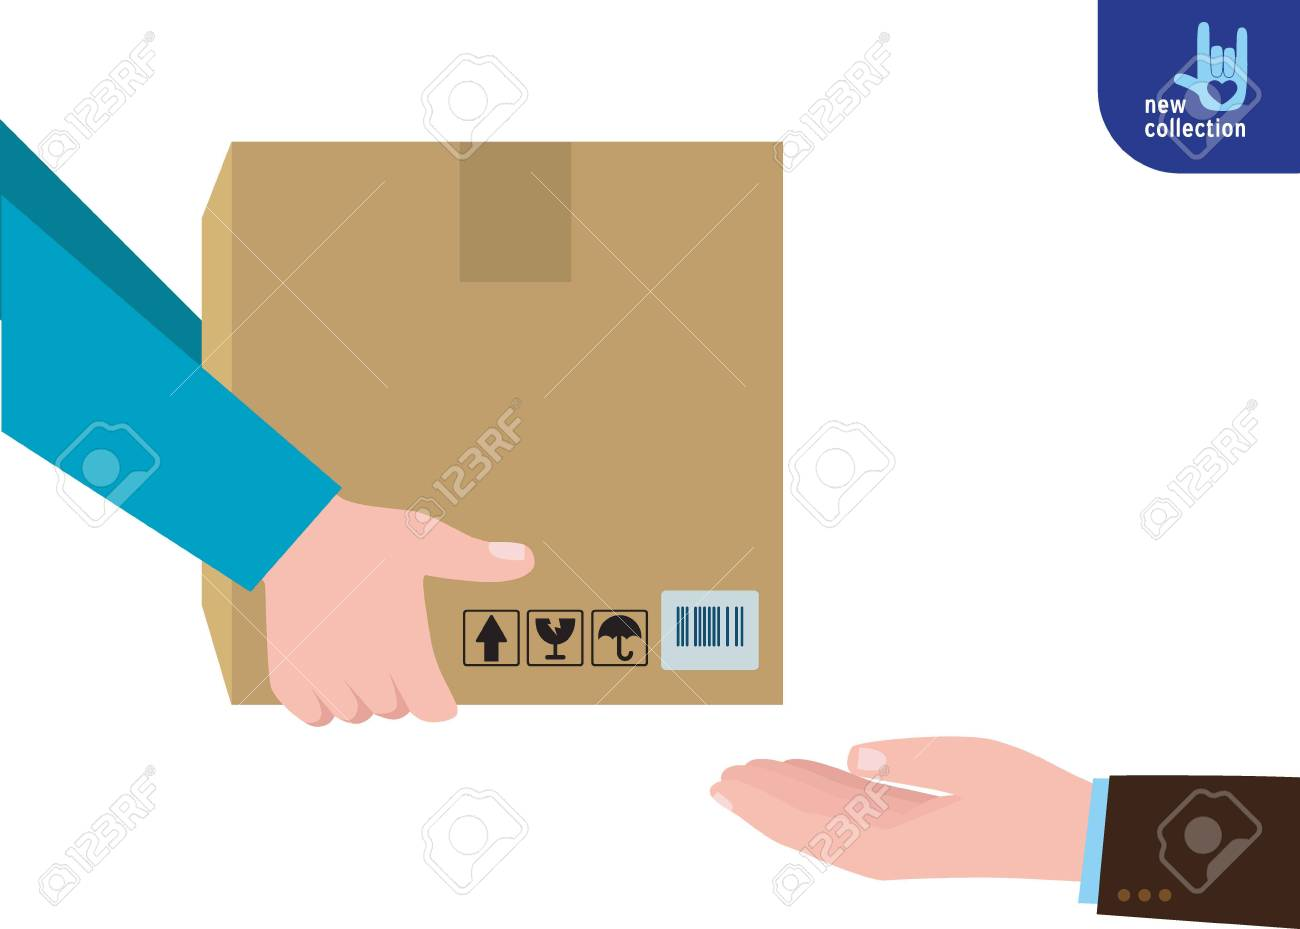 Closeup. busines man hand accepting a delivery of boxes from deliverymanCourier Hands with postal cardboard box.service concept.Vector flat cartoon design illustration.Isolated on white background. - 73251550